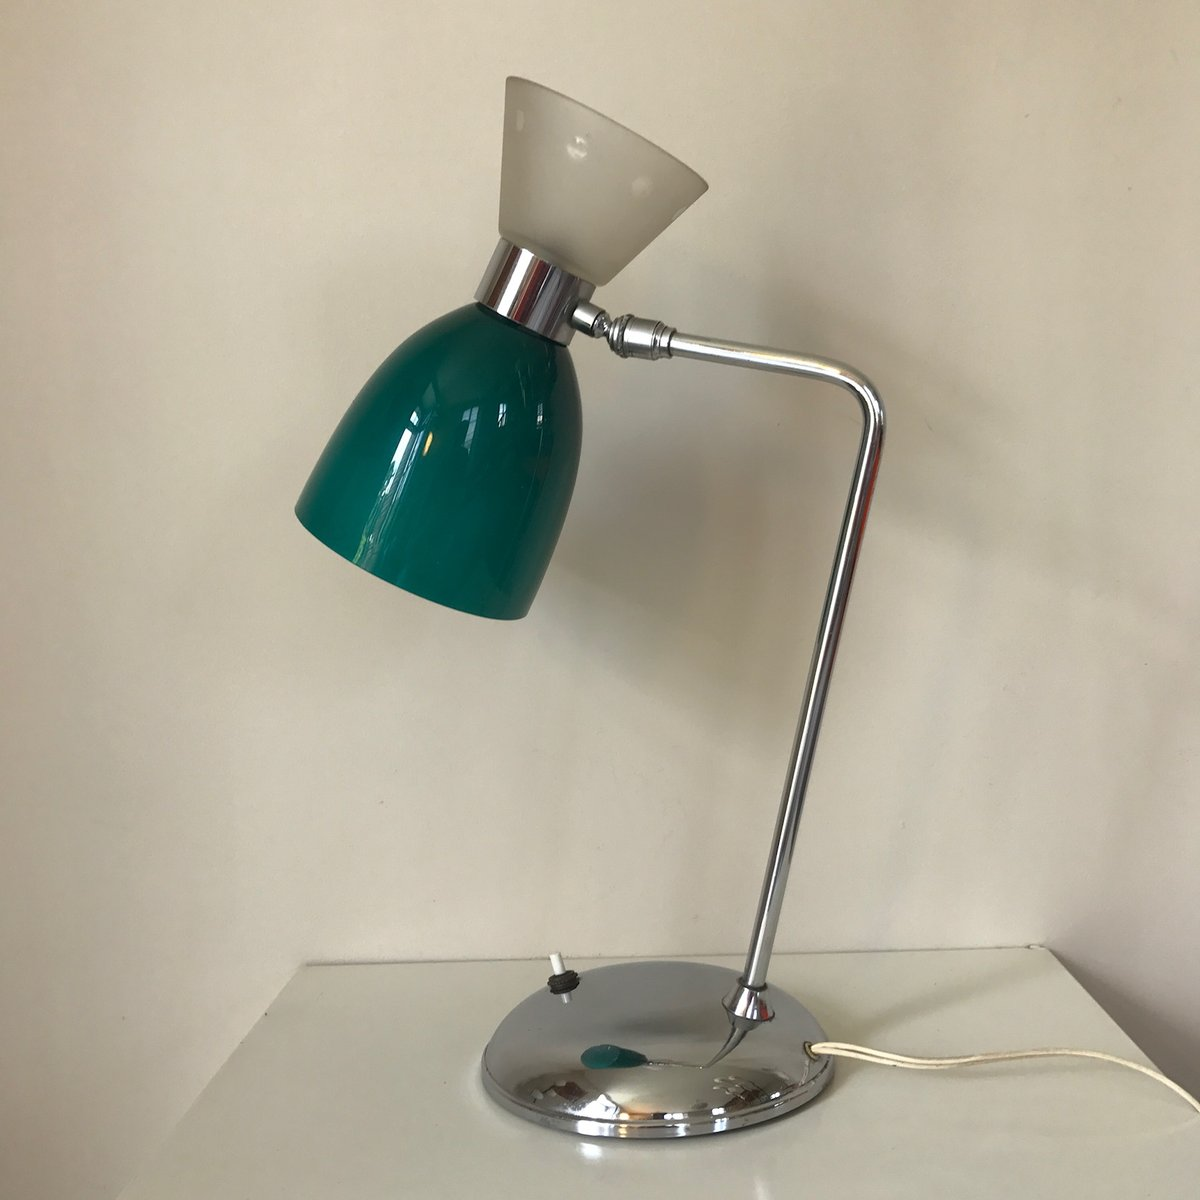 Chrom Lampe Chrom And Glas Diabolo Lampe 1960er Bei Pamono Kaufen